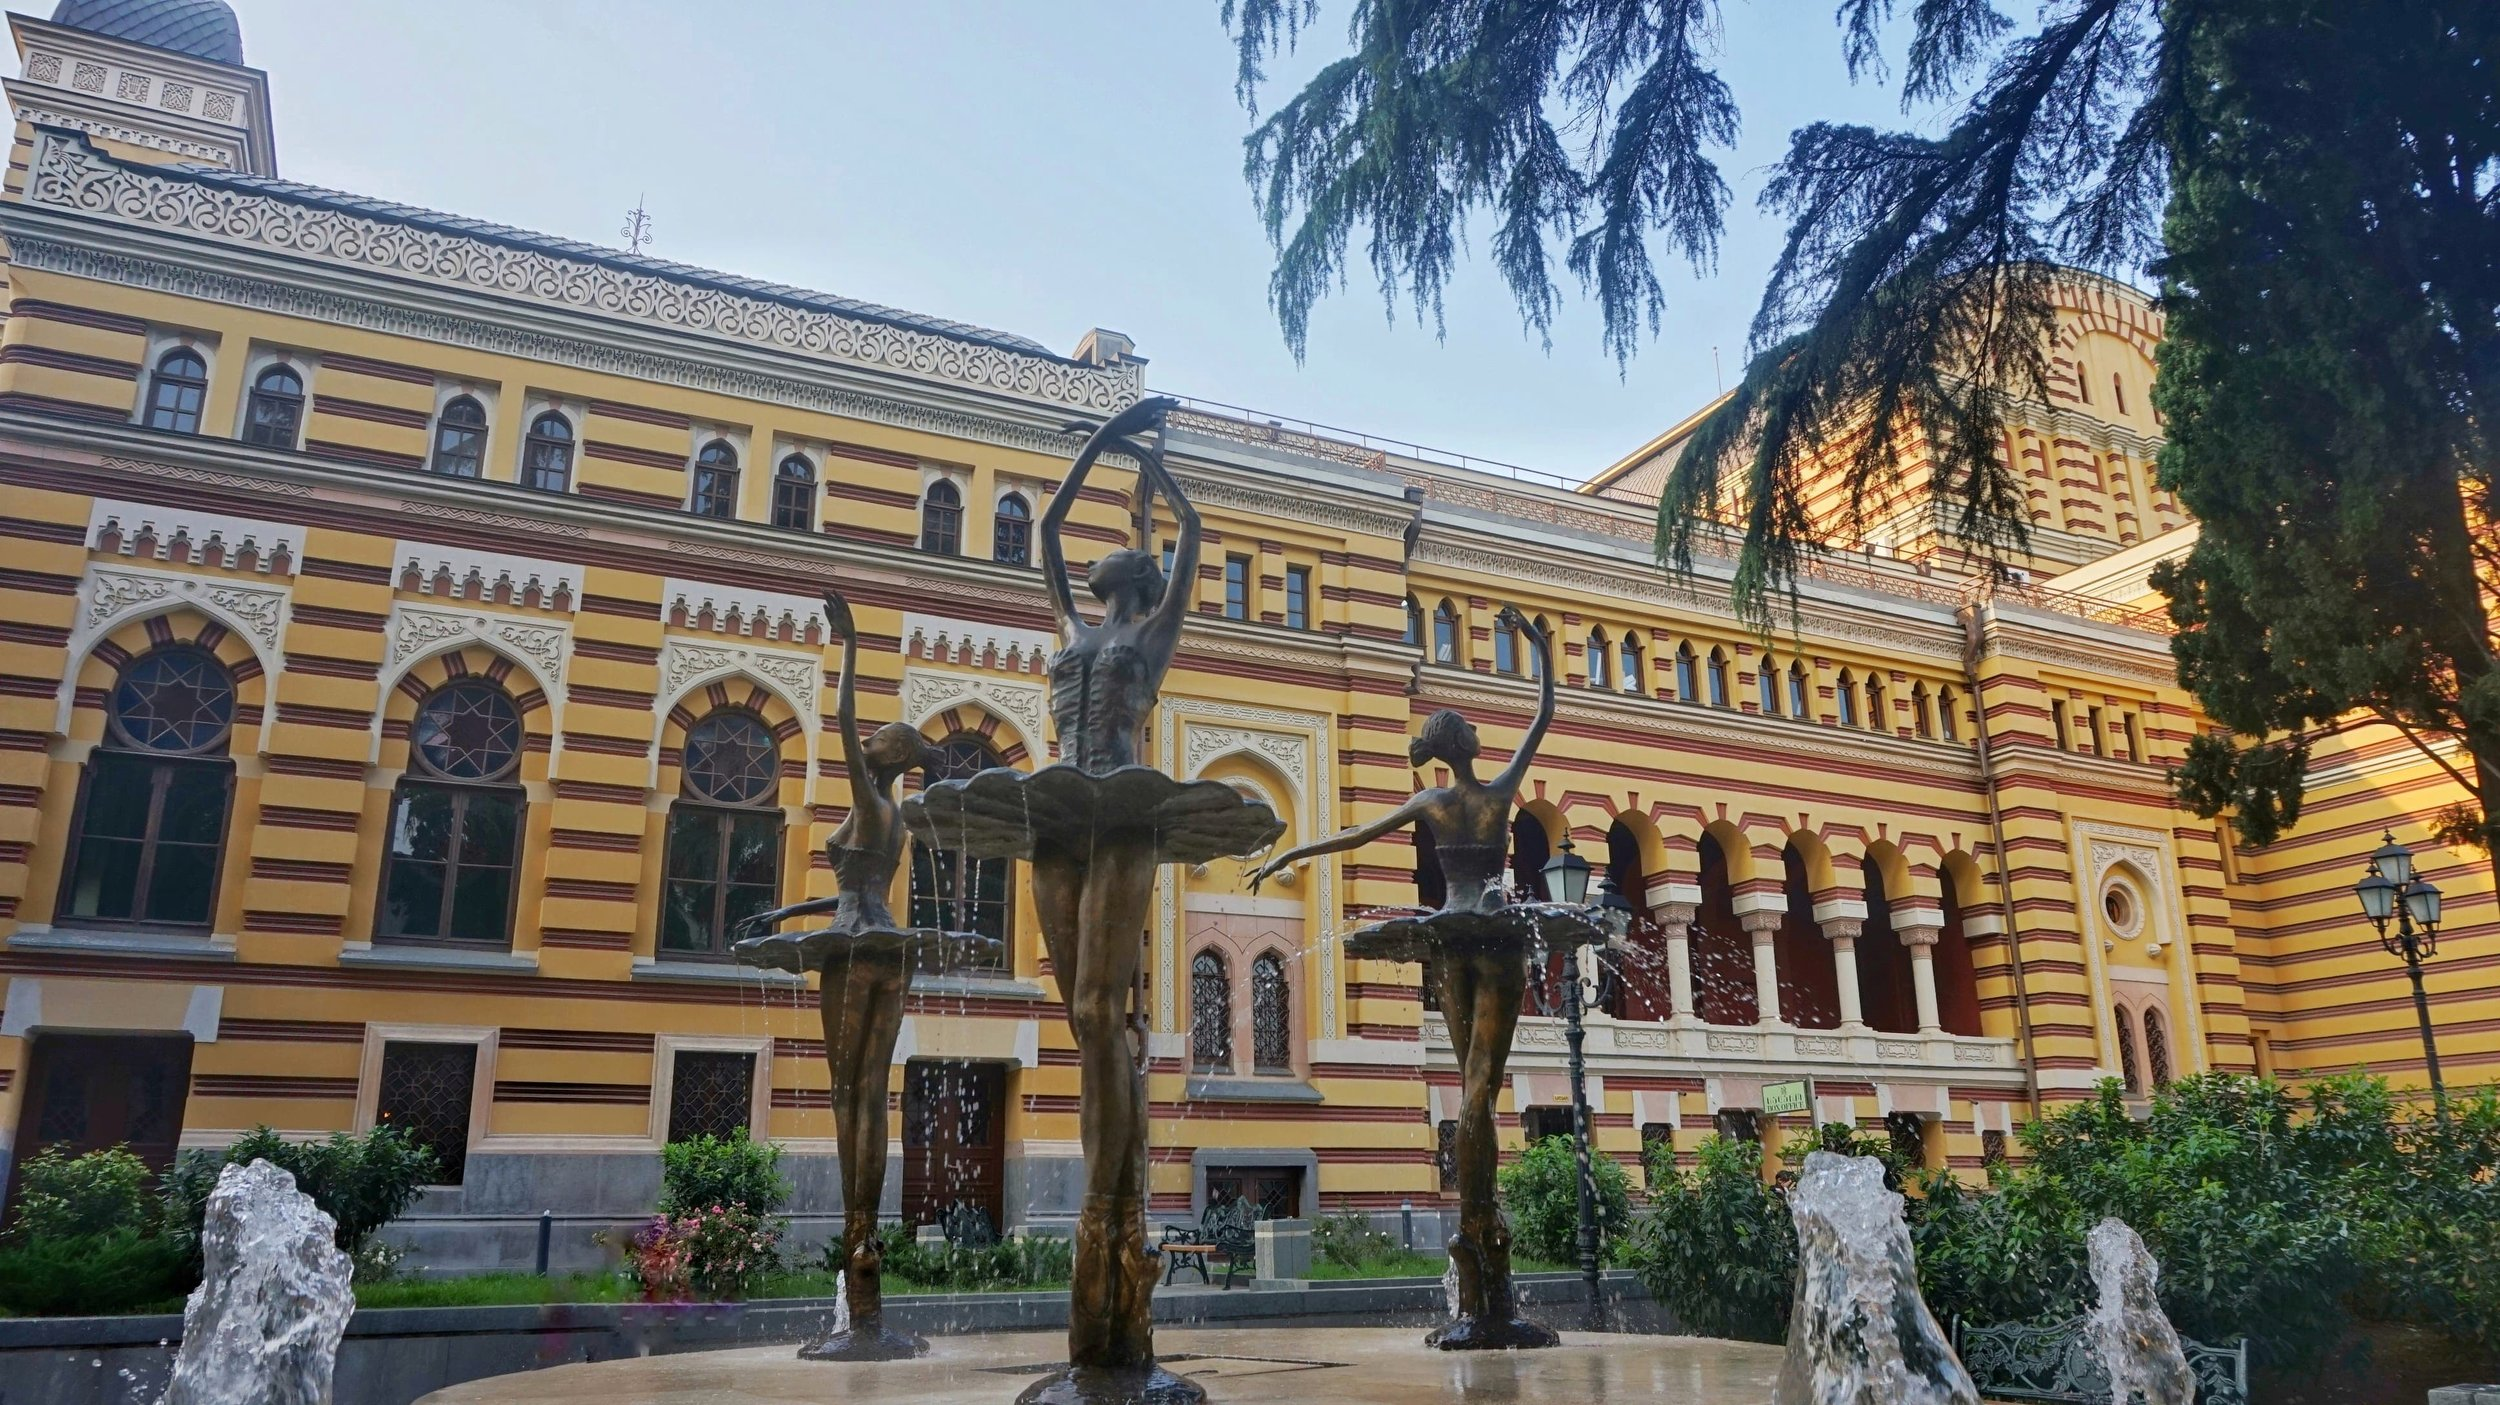 Rustaveli avenue is one of the best places to stay in Tbilisi. Very central and close to a lot very good restaurants and attractions in Tbilisi, with the best hotels to stay in Tbilisi.